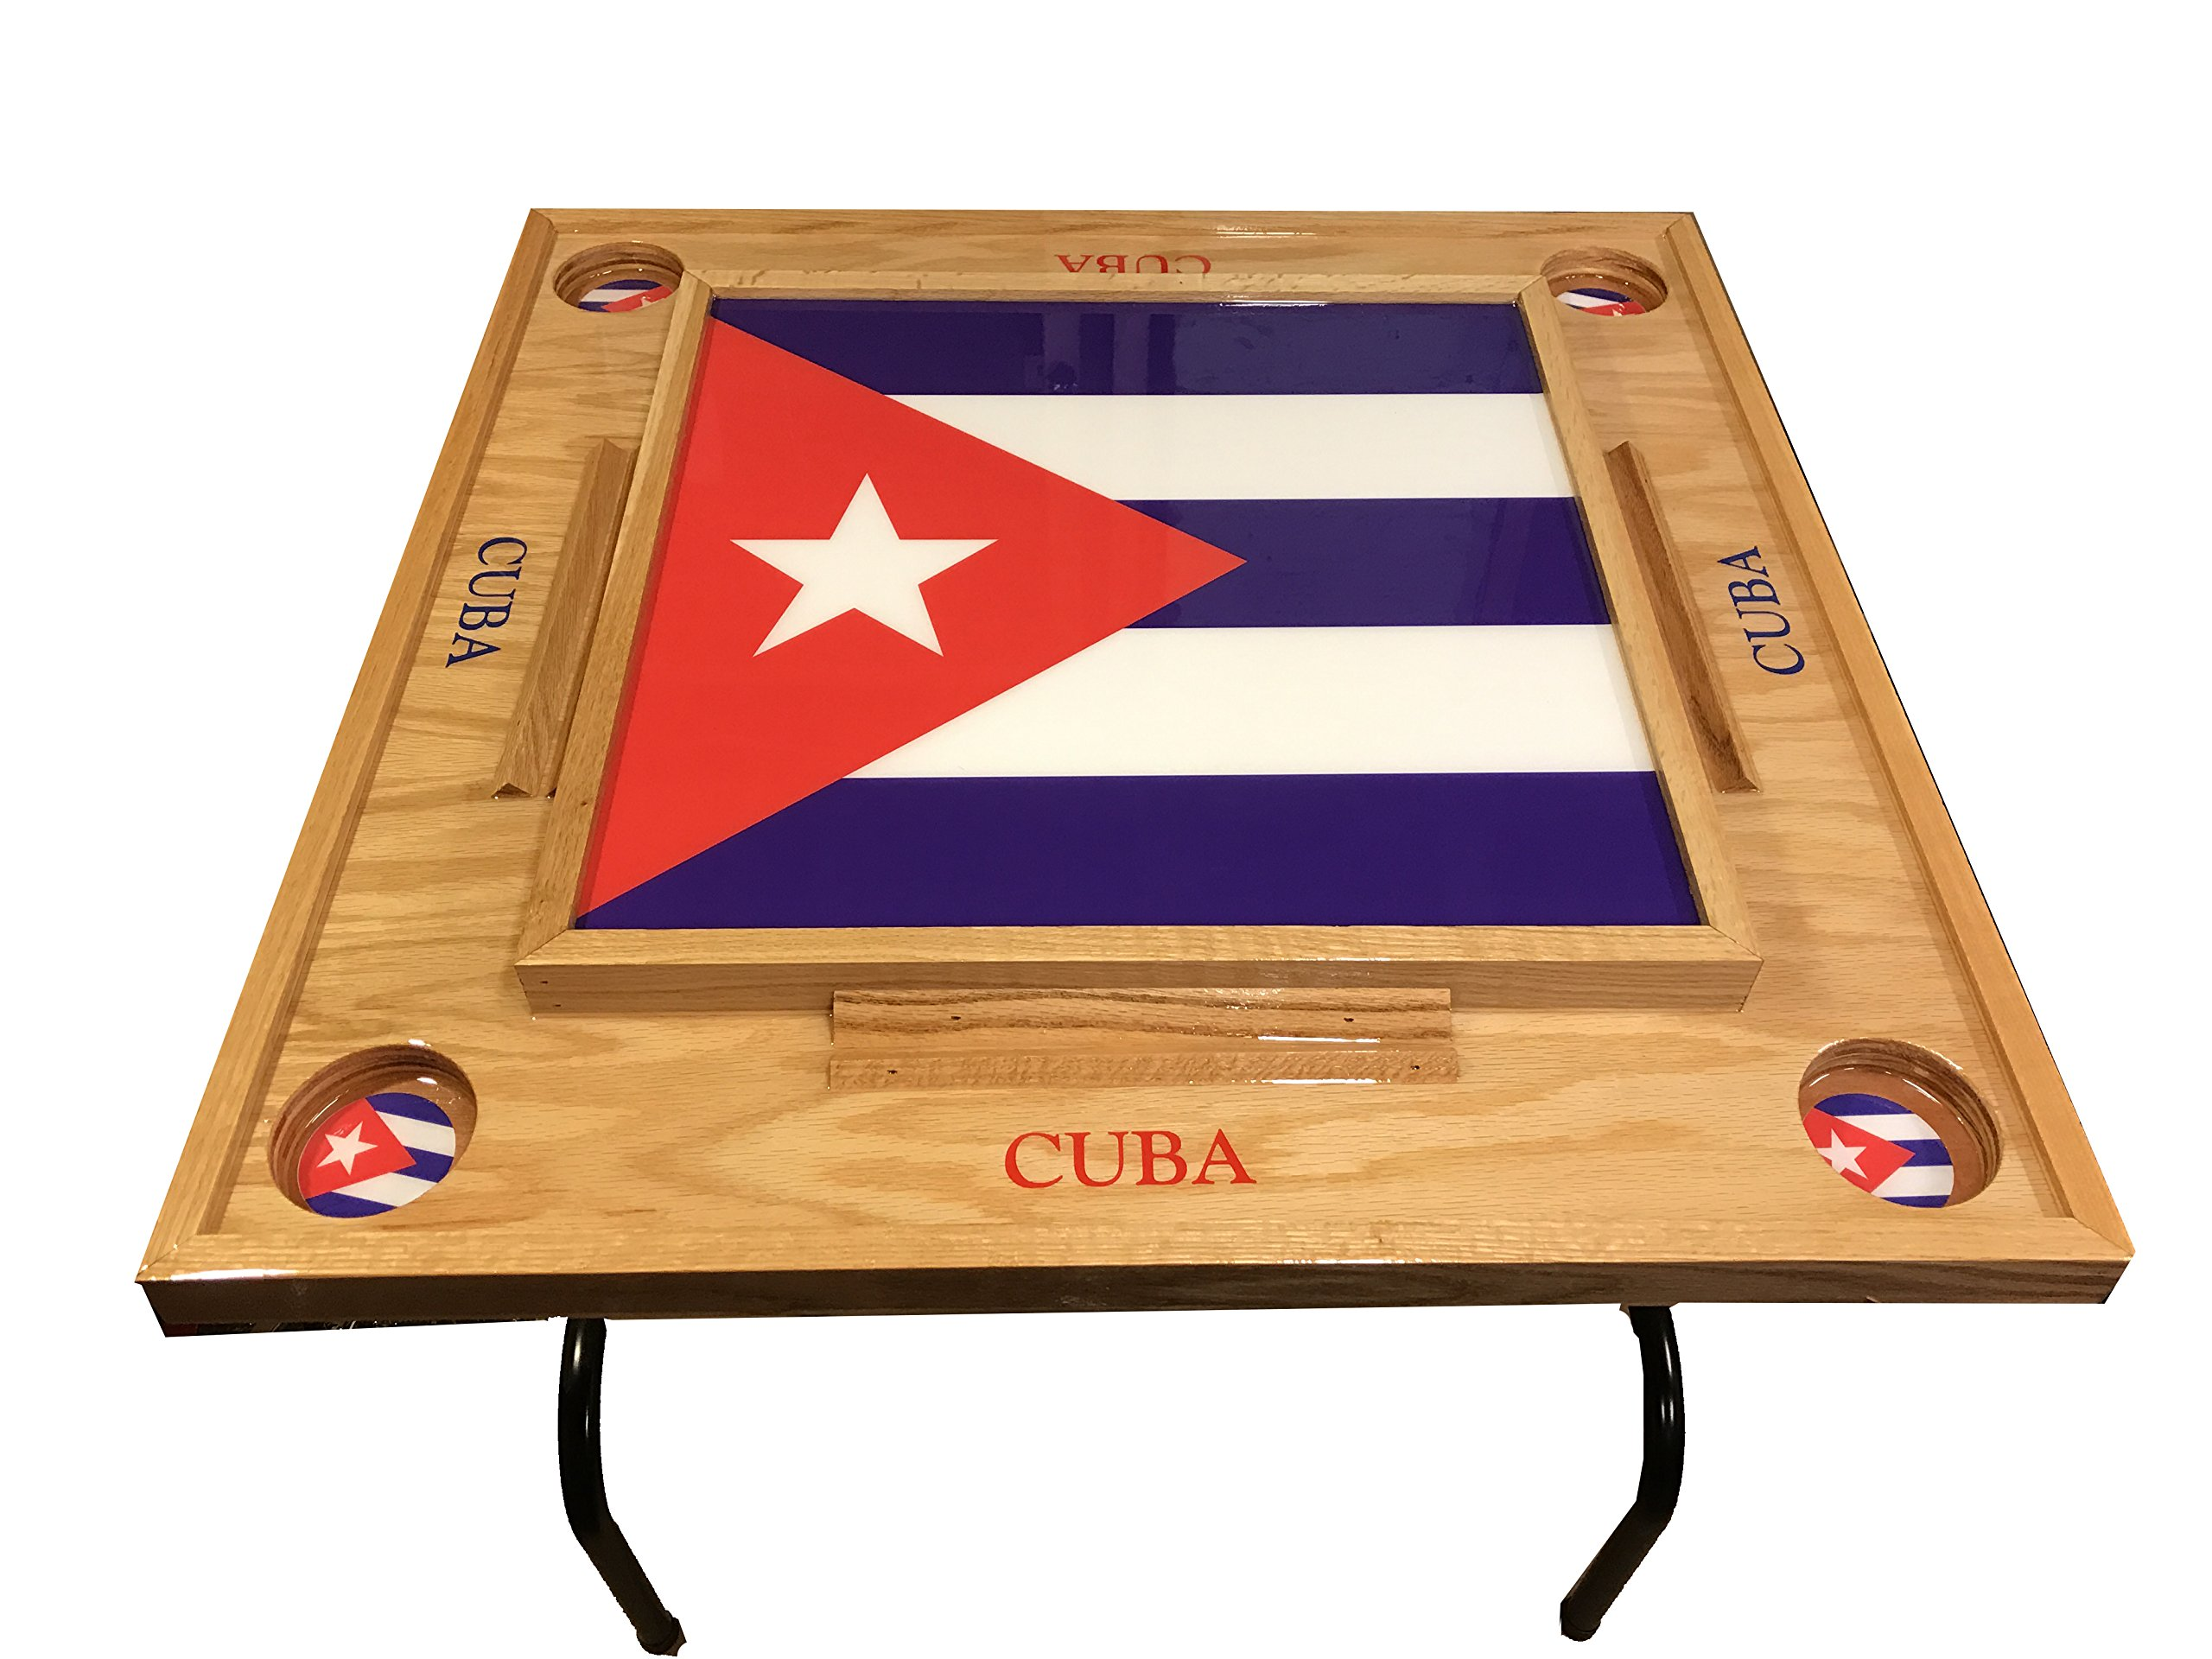 Cuba Flag Domino Table with Flag -Full by latinos r us